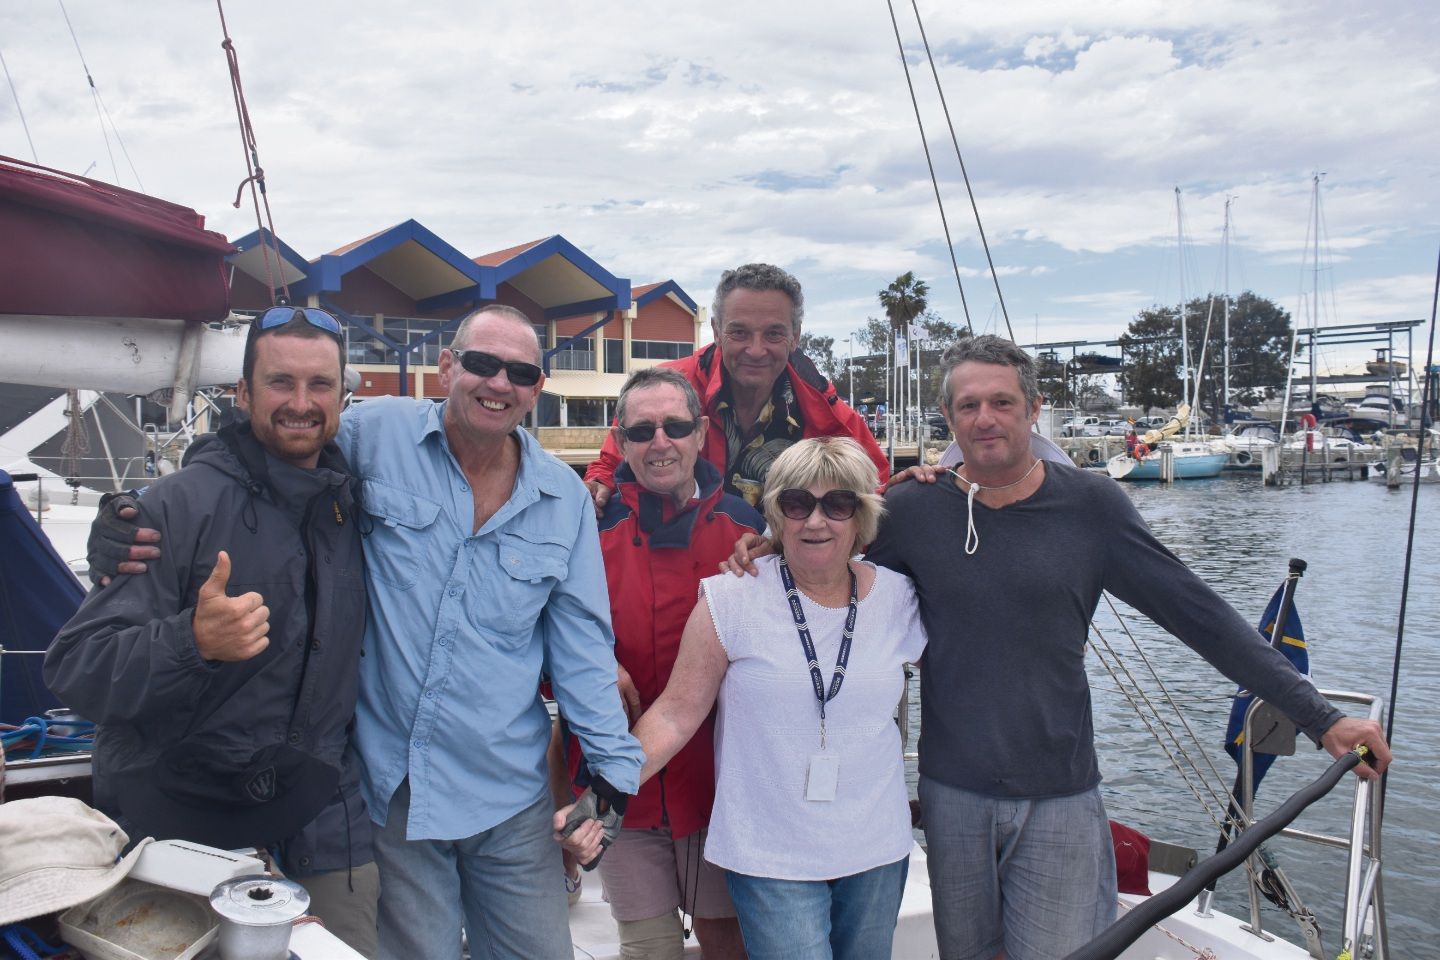 Pandora crew sailed in a mark of respect to Chris Grant … pictured after the race are Sandy Grant, Seb Venaille, Terry Mather, Phil Maslen, Rob Bortot and Jeremy Grant.